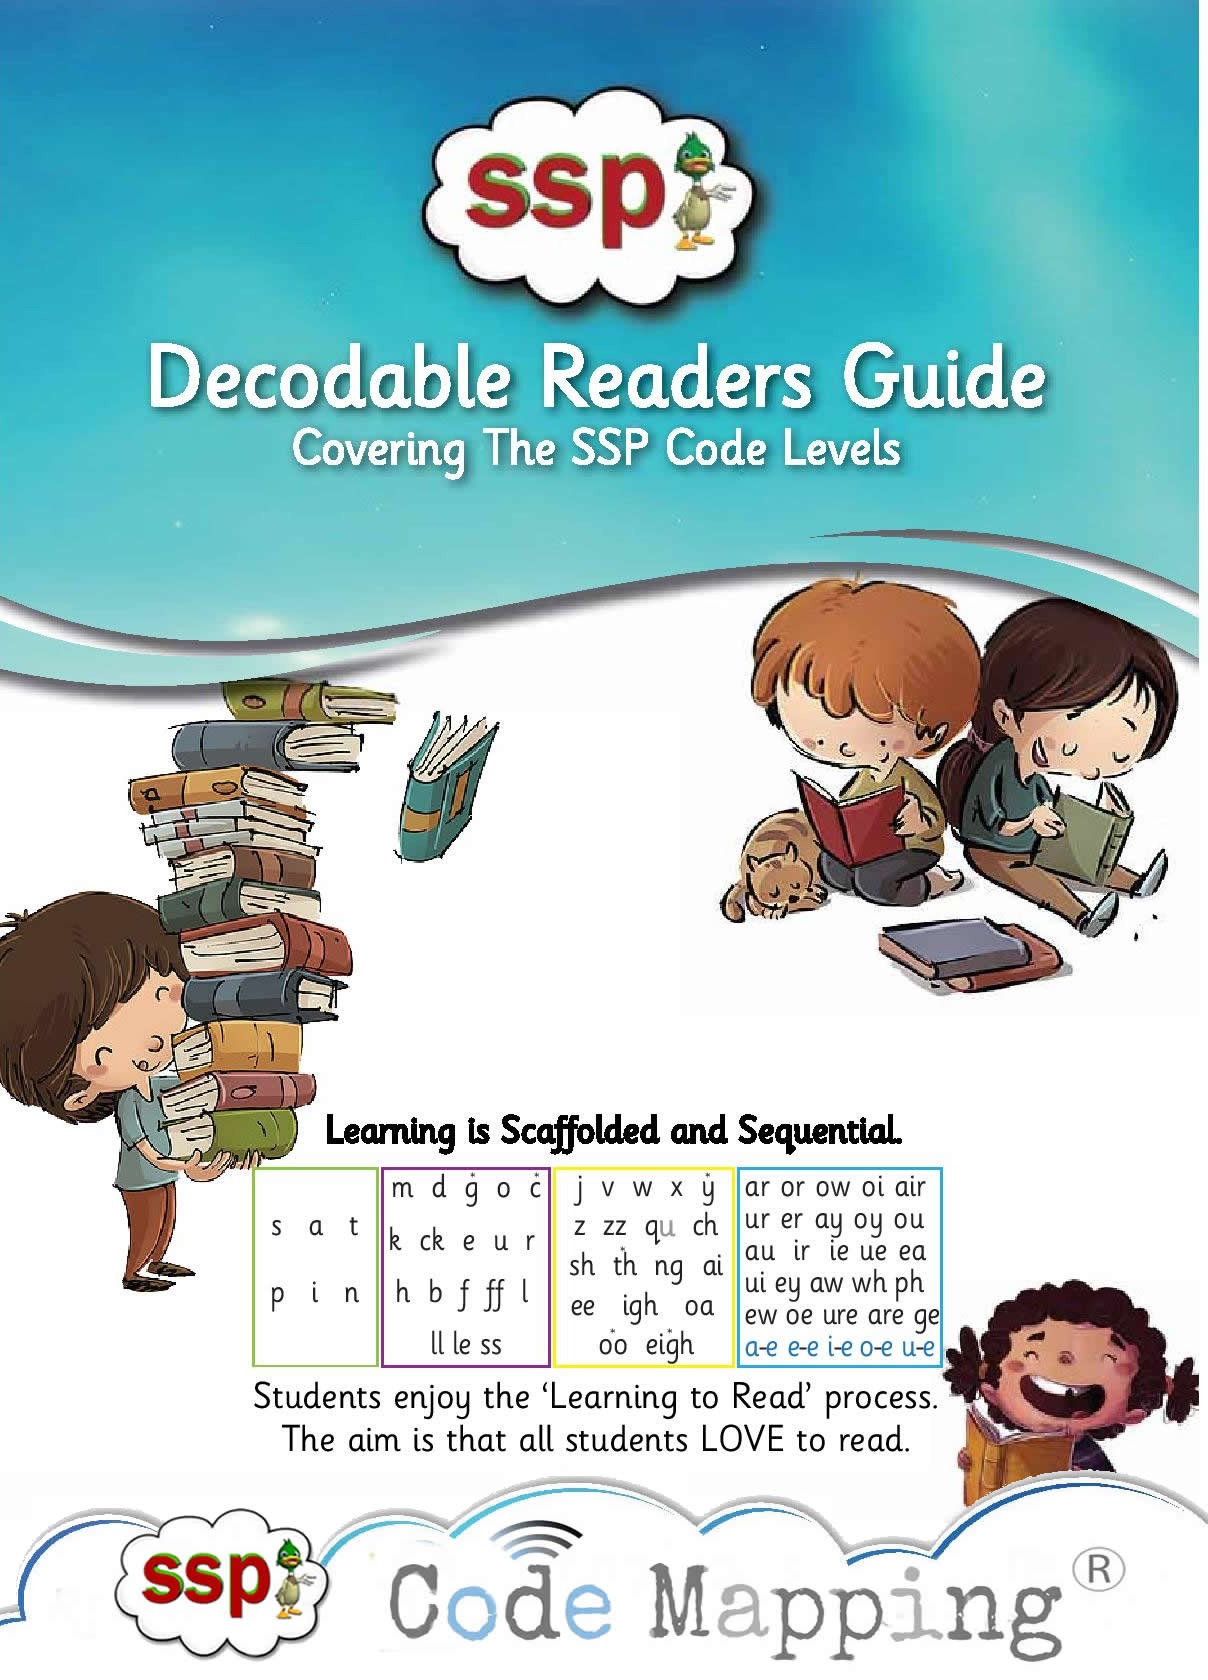 Decodable Readers Guide - FREE ! SSP Decodable Readers Australia Guide